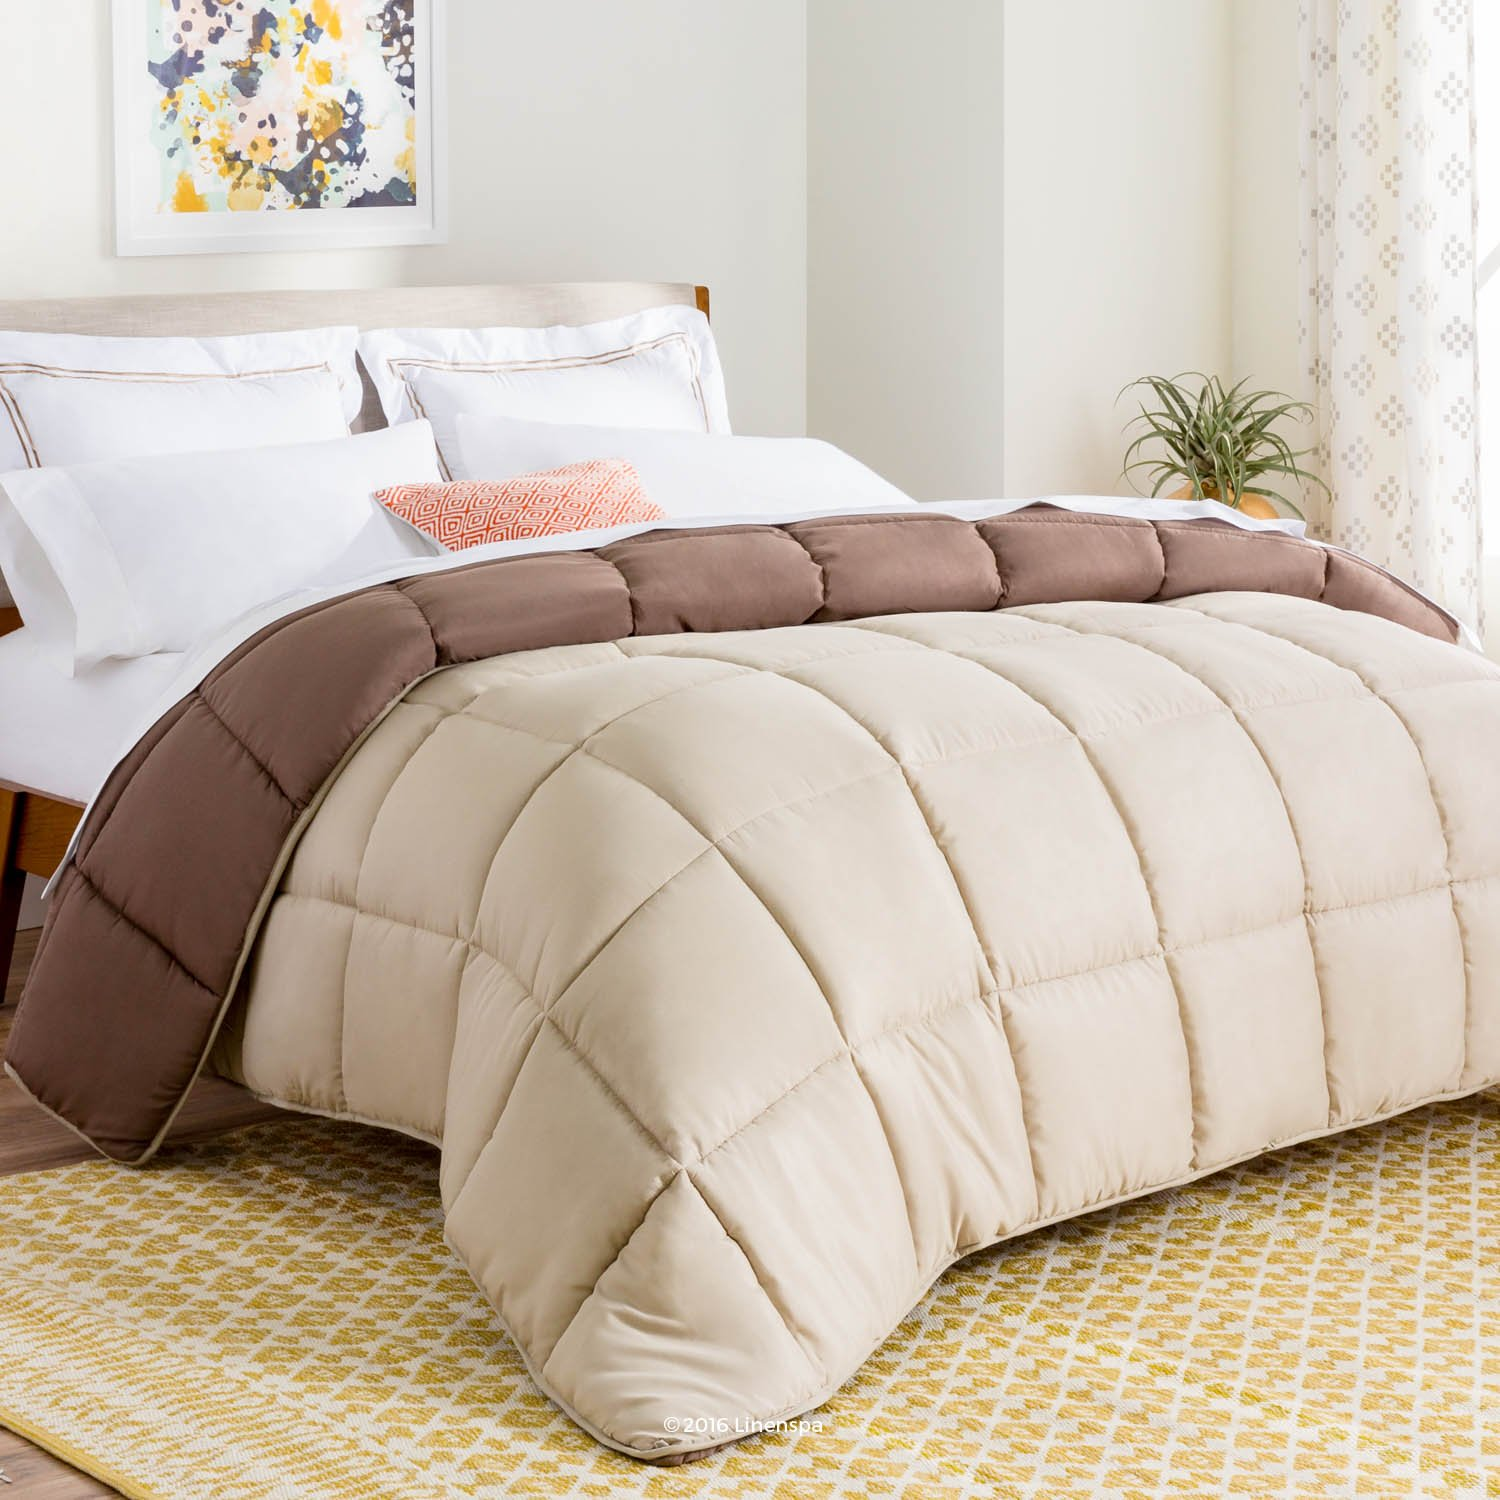 LINENSPA All-Season Reversible Down Alternative Quilted Comforter - Corner Duvet Tabs - Hypoallergenic - Plush Microfiber Fill - Box Stitched - Machine Washable - Sand/Mocha - Oversized King LS70OKSAMOMICO